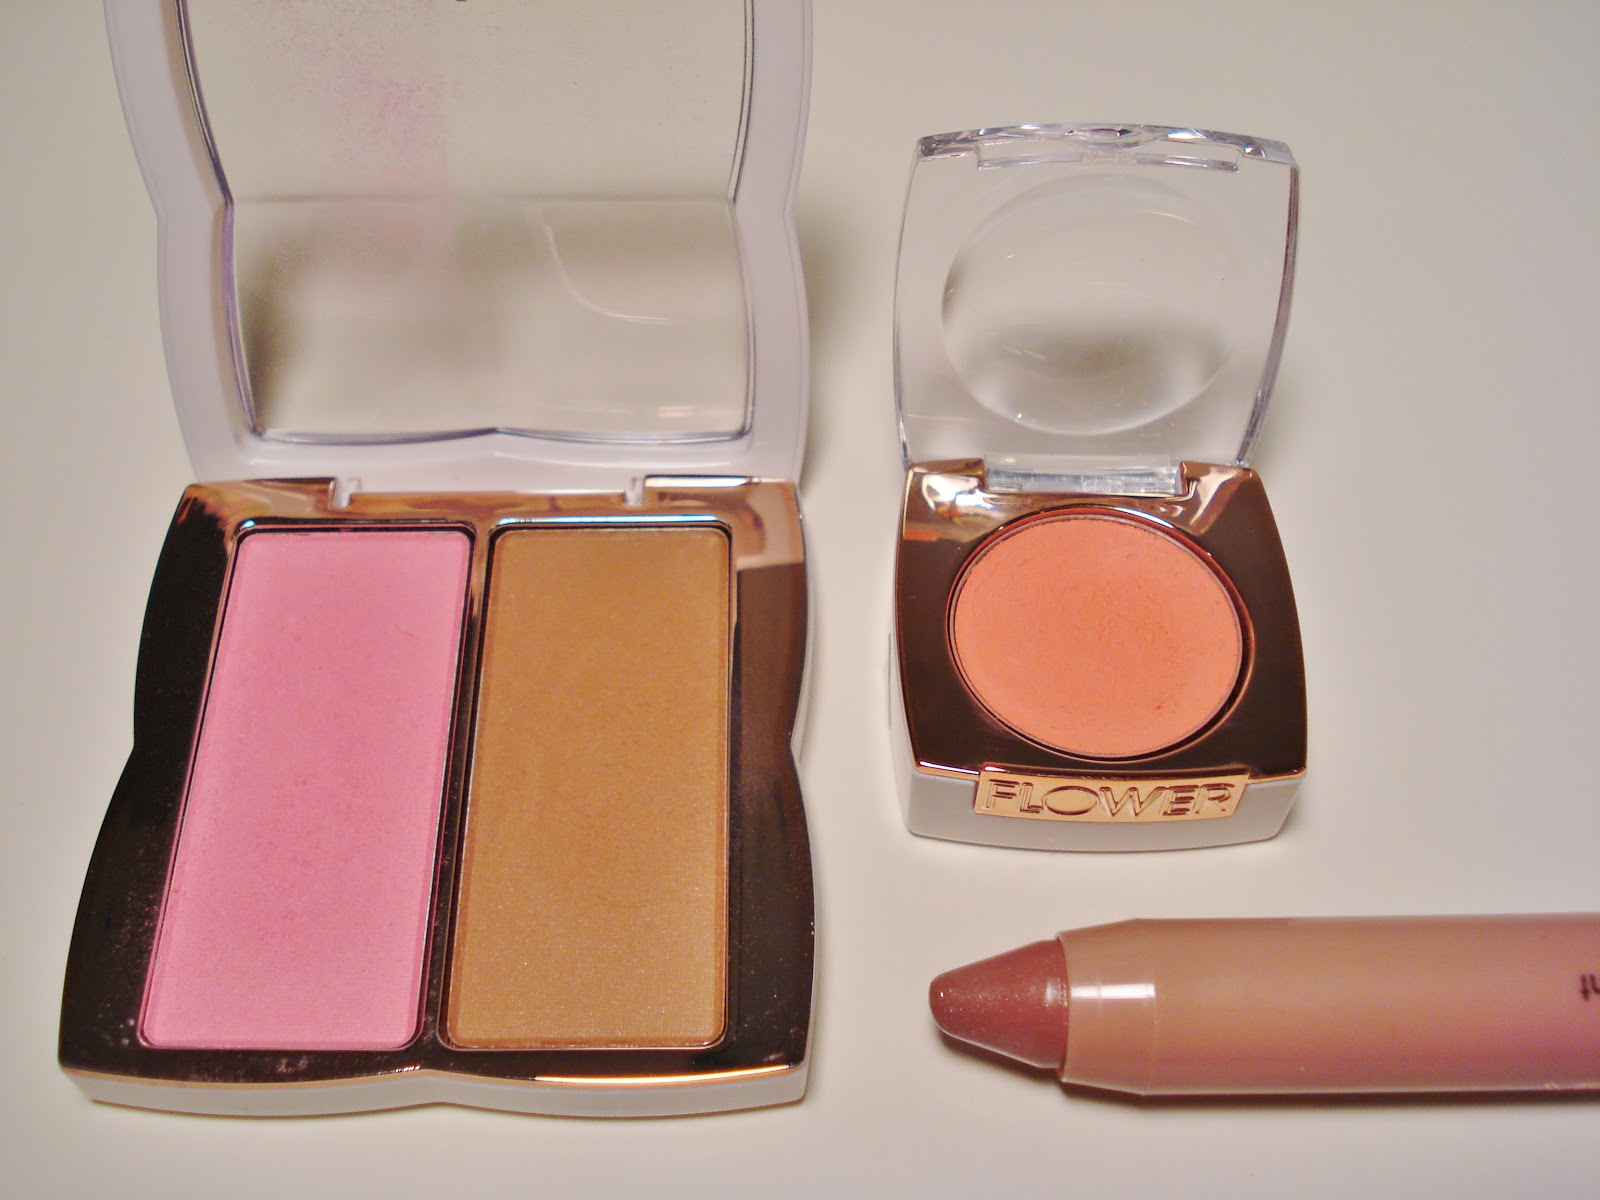 Flower beauty from drew barrymore first impressions makeupwednesday clockwise from left flower ready set glow blushbronzer duo in gloriously golden flower win some rouge some creme blush in peach blossom flower sheer izmirmasajfo